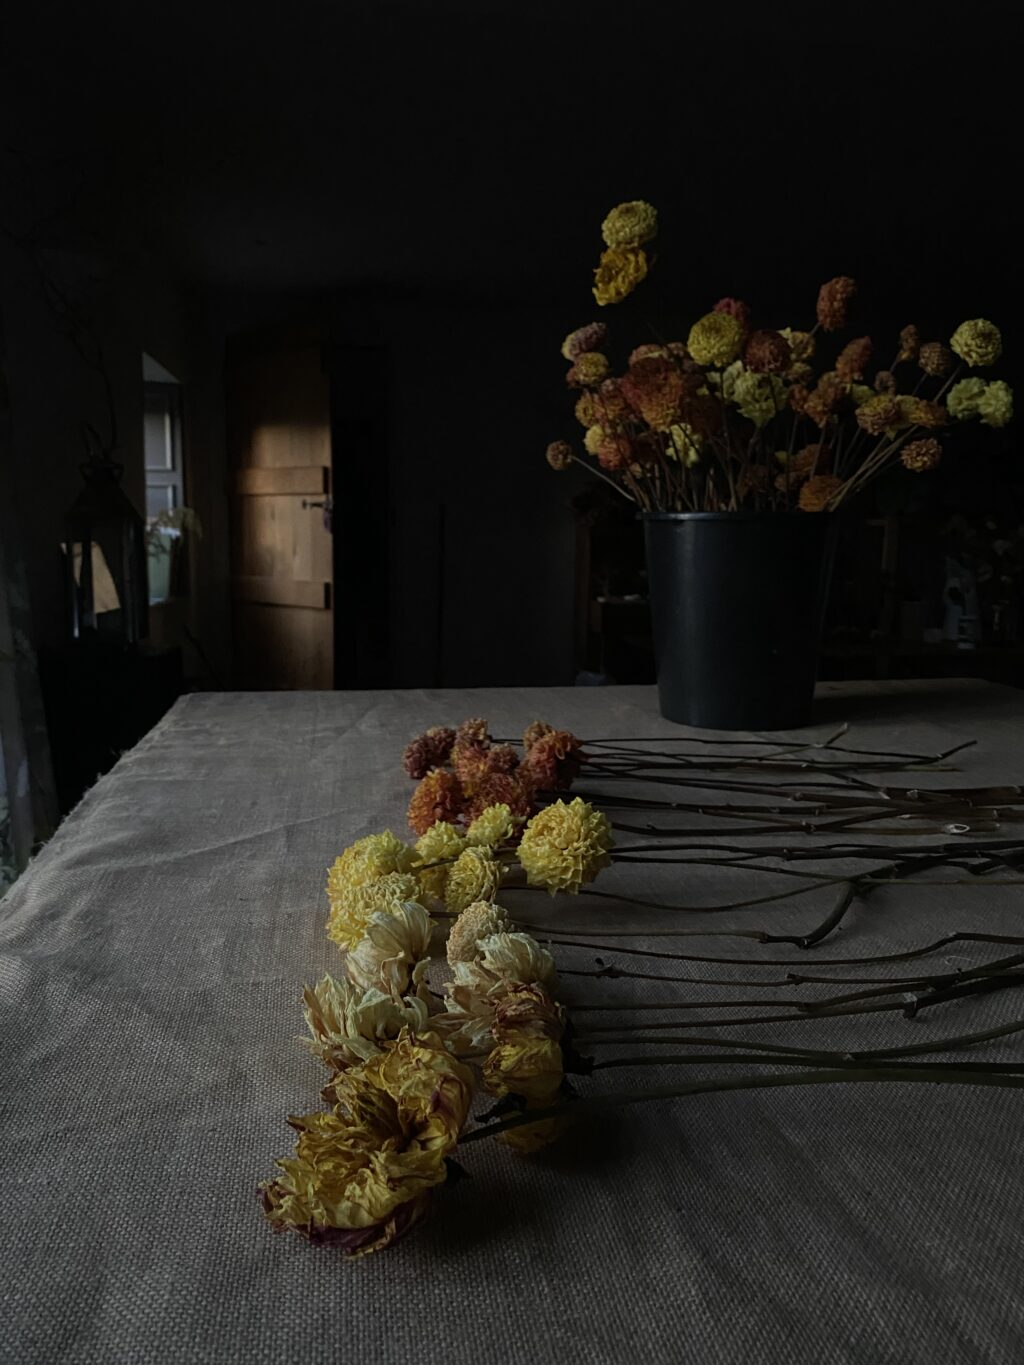 Just dahlias dried flowers on a table in a dark interior reminiscent of an old masters painting.